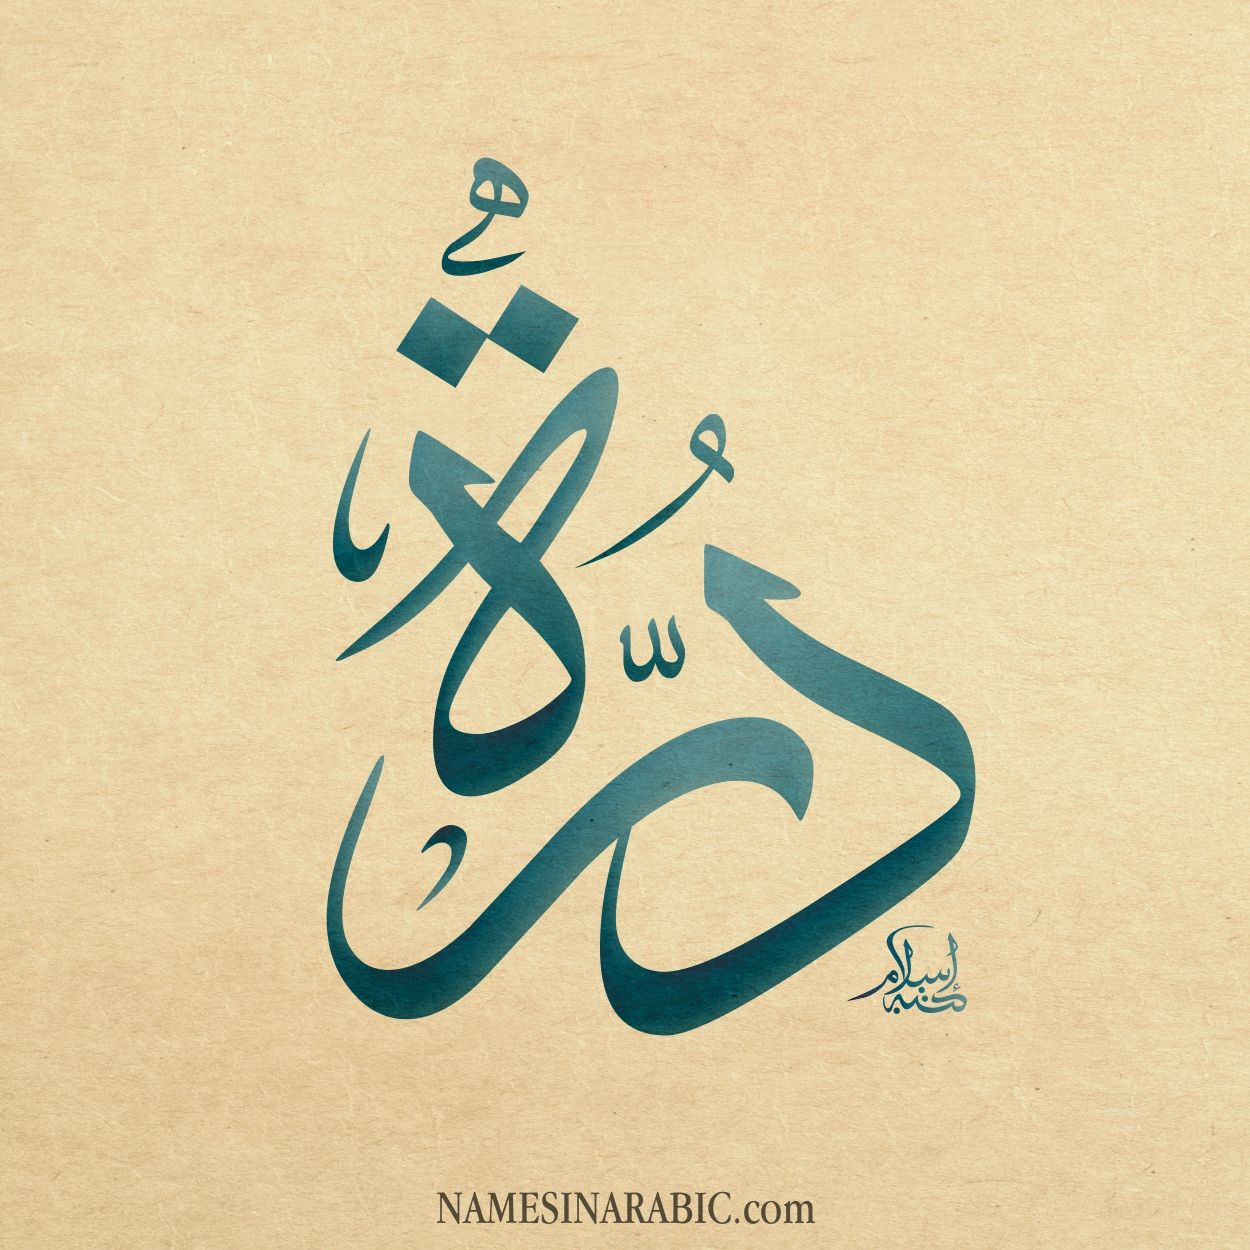 Pin By Ahmed Al Mousa On Arabic Calligraphy أسماء Name Embroidery Lettering Arabic Calligraphy